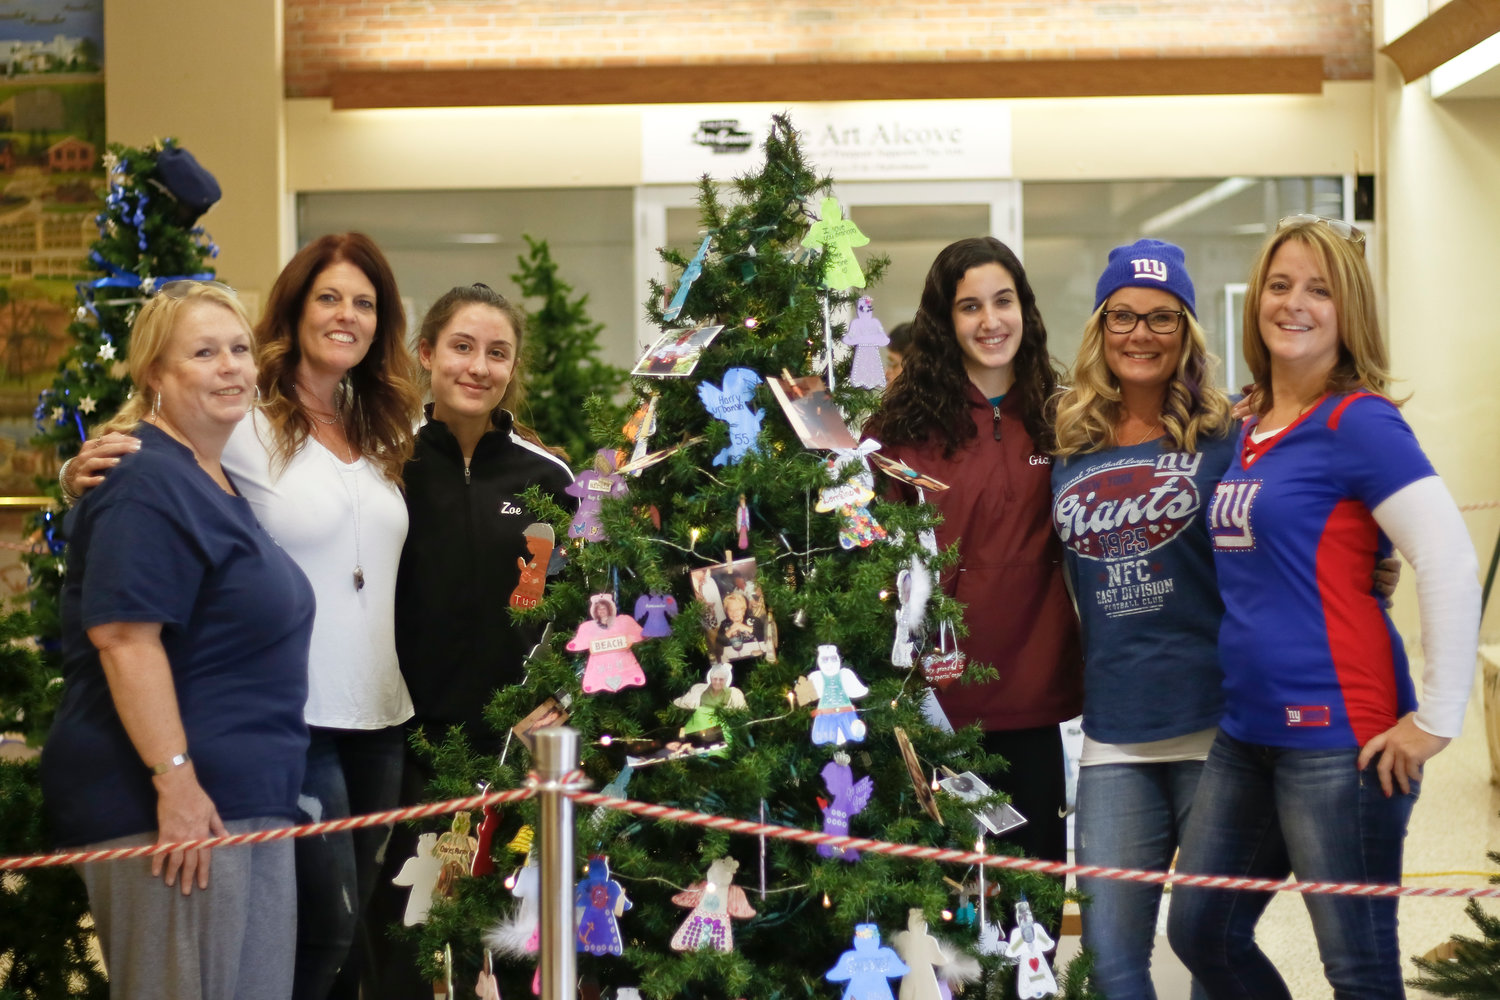 Decorators, from left, Mary Muldowney, Alicia Brodsky, Zoe Dallaris, Gianna Brodsky, Penny Smith and Kim Labrador hung ornaments memorializing those who have passed on. Under the tree is a basket of angels that people can decorate for a loved one they lost.